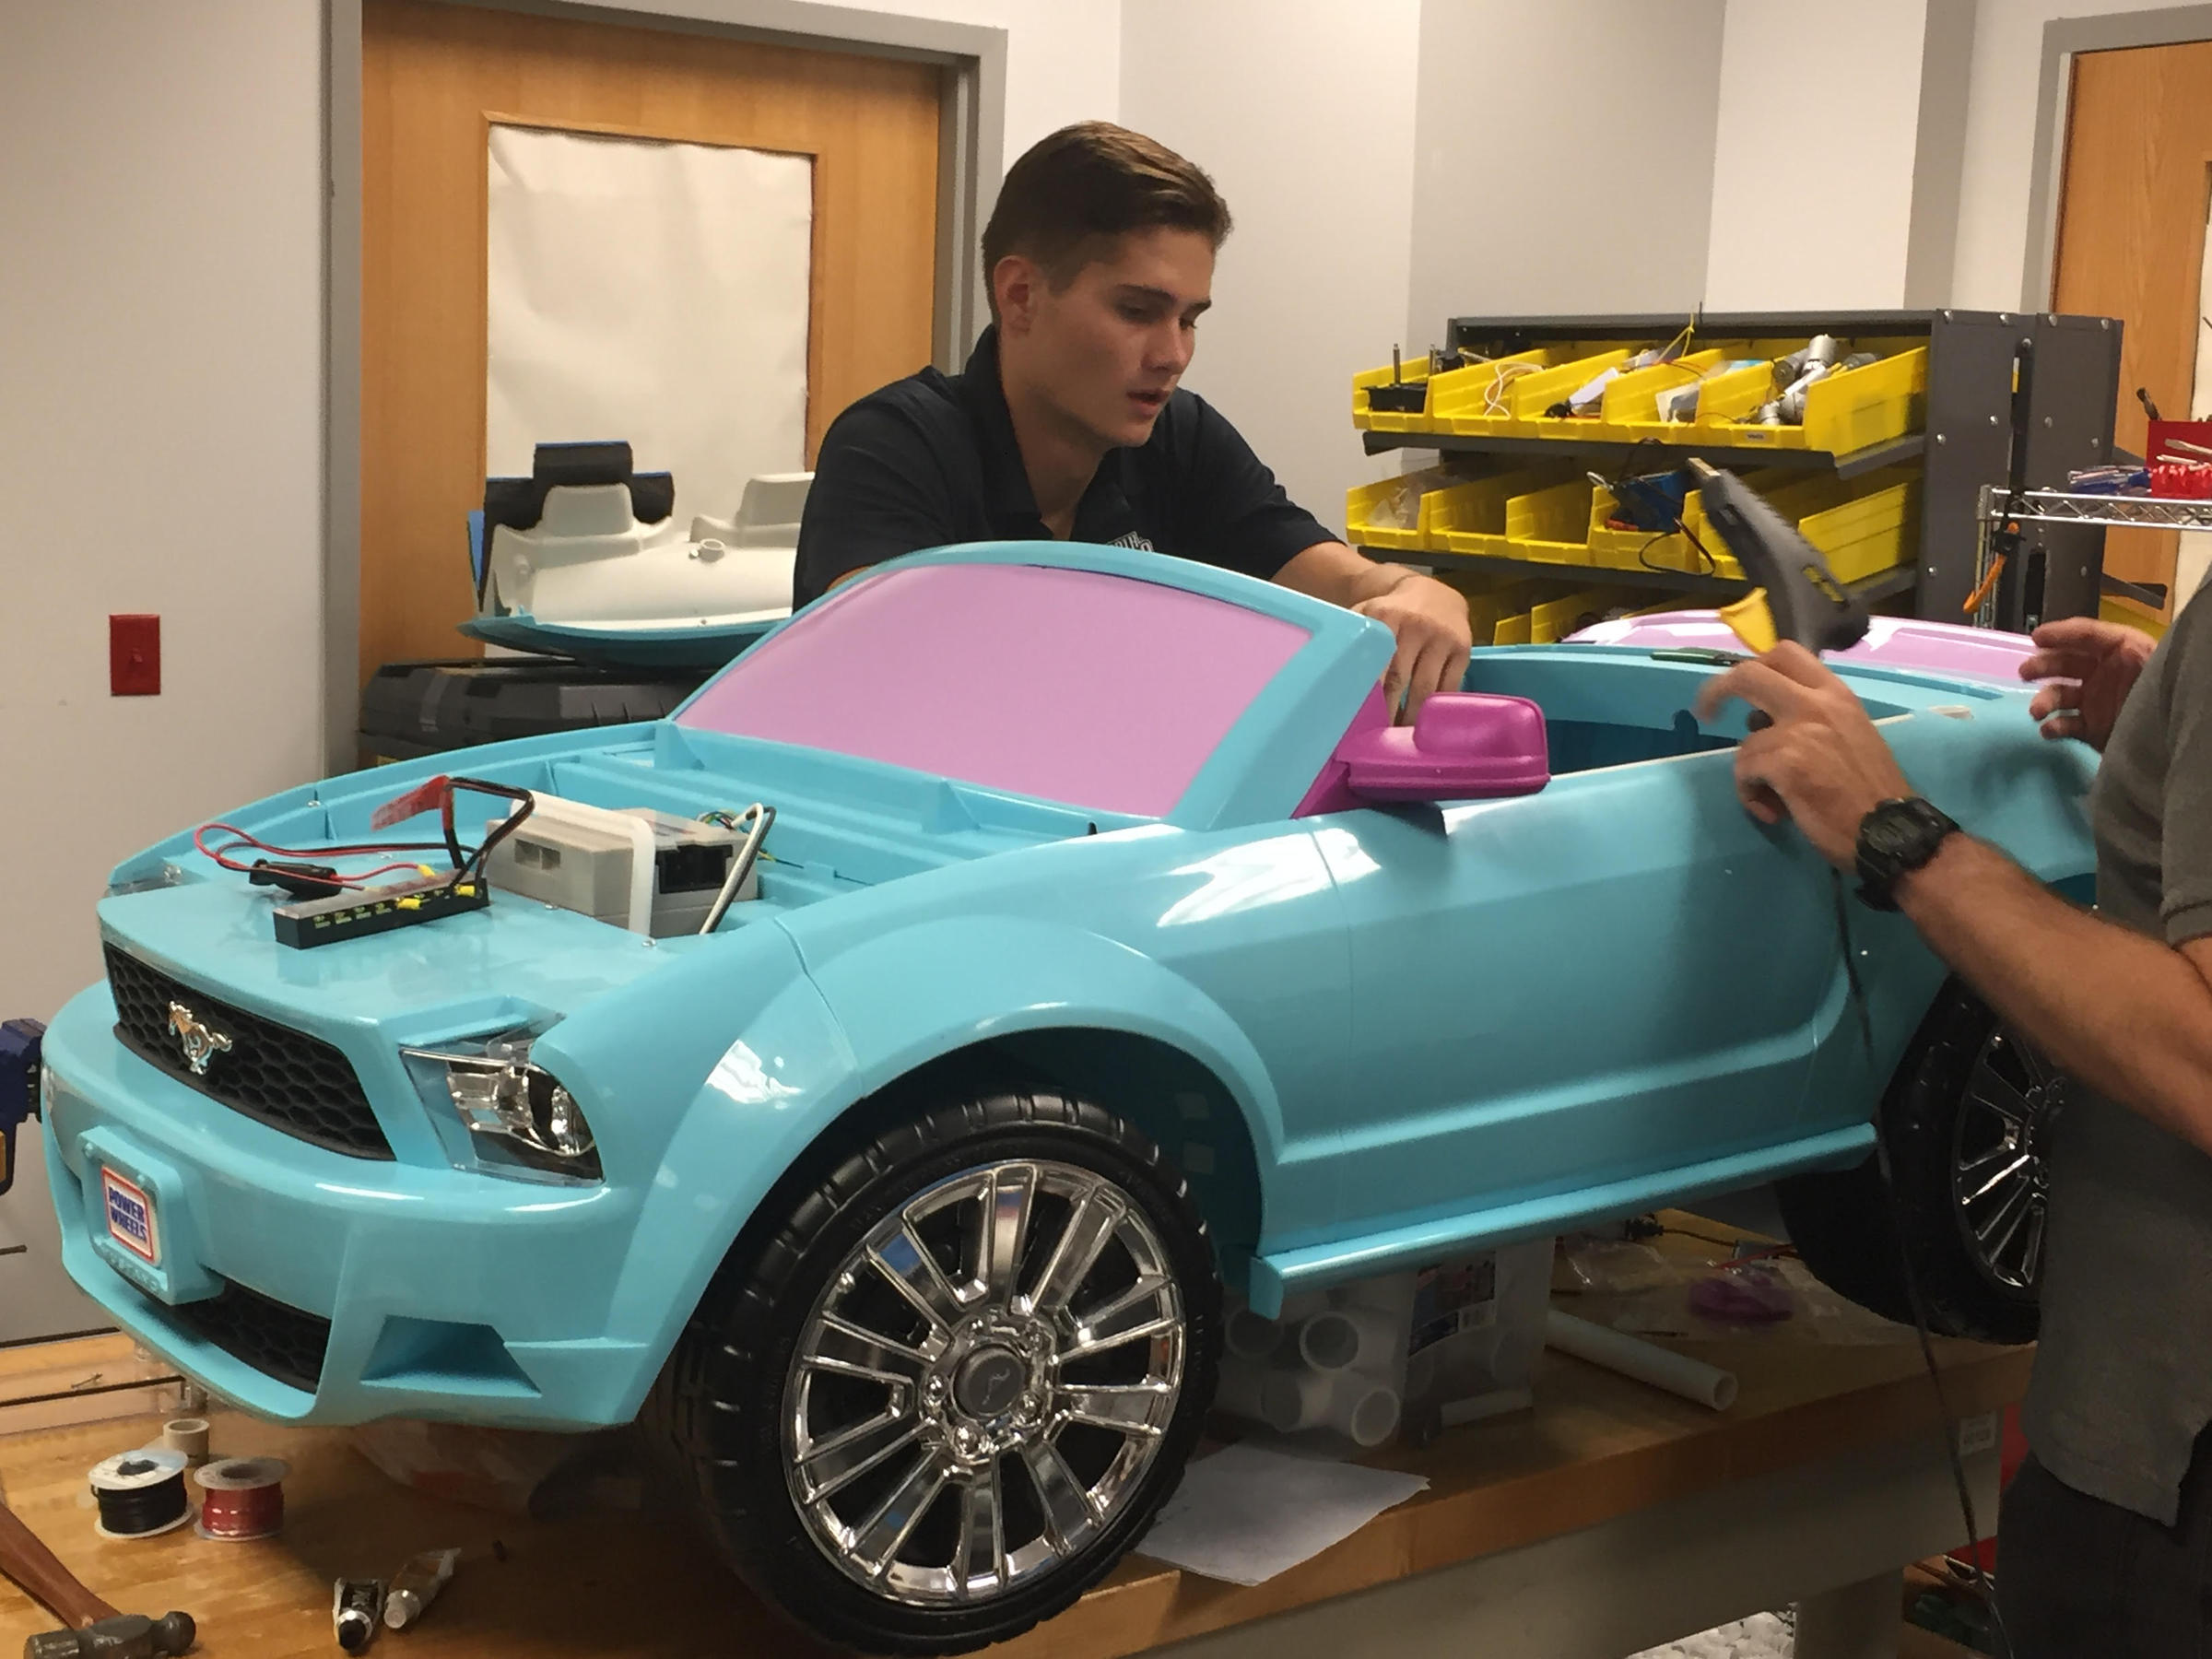 unf mechanical engineering student kristian sipos works on a car for a young child with disabilities